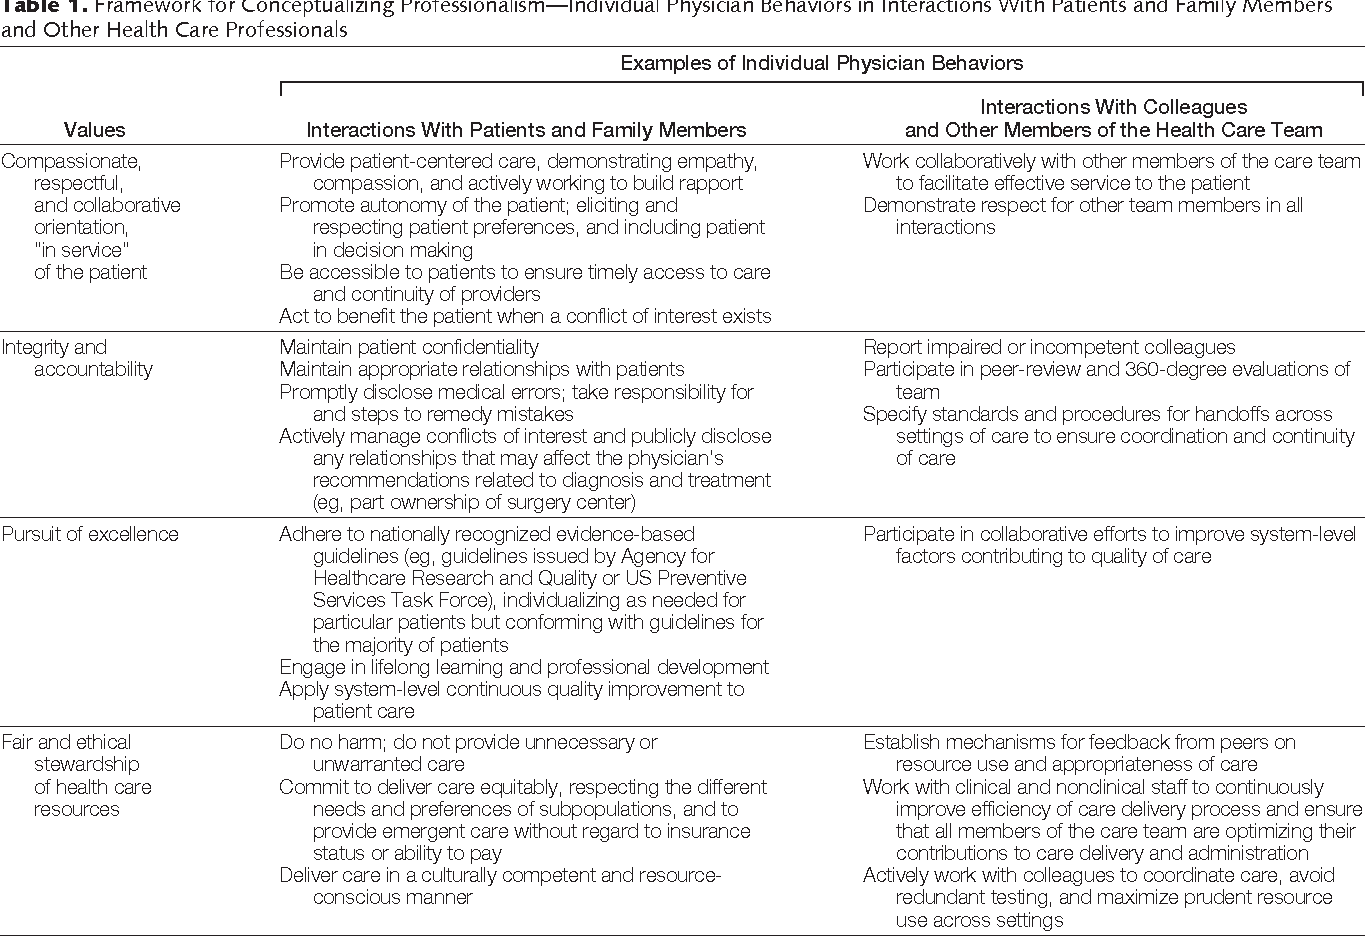 Table 1 From A Behavioral And Systems View Of Professionalism